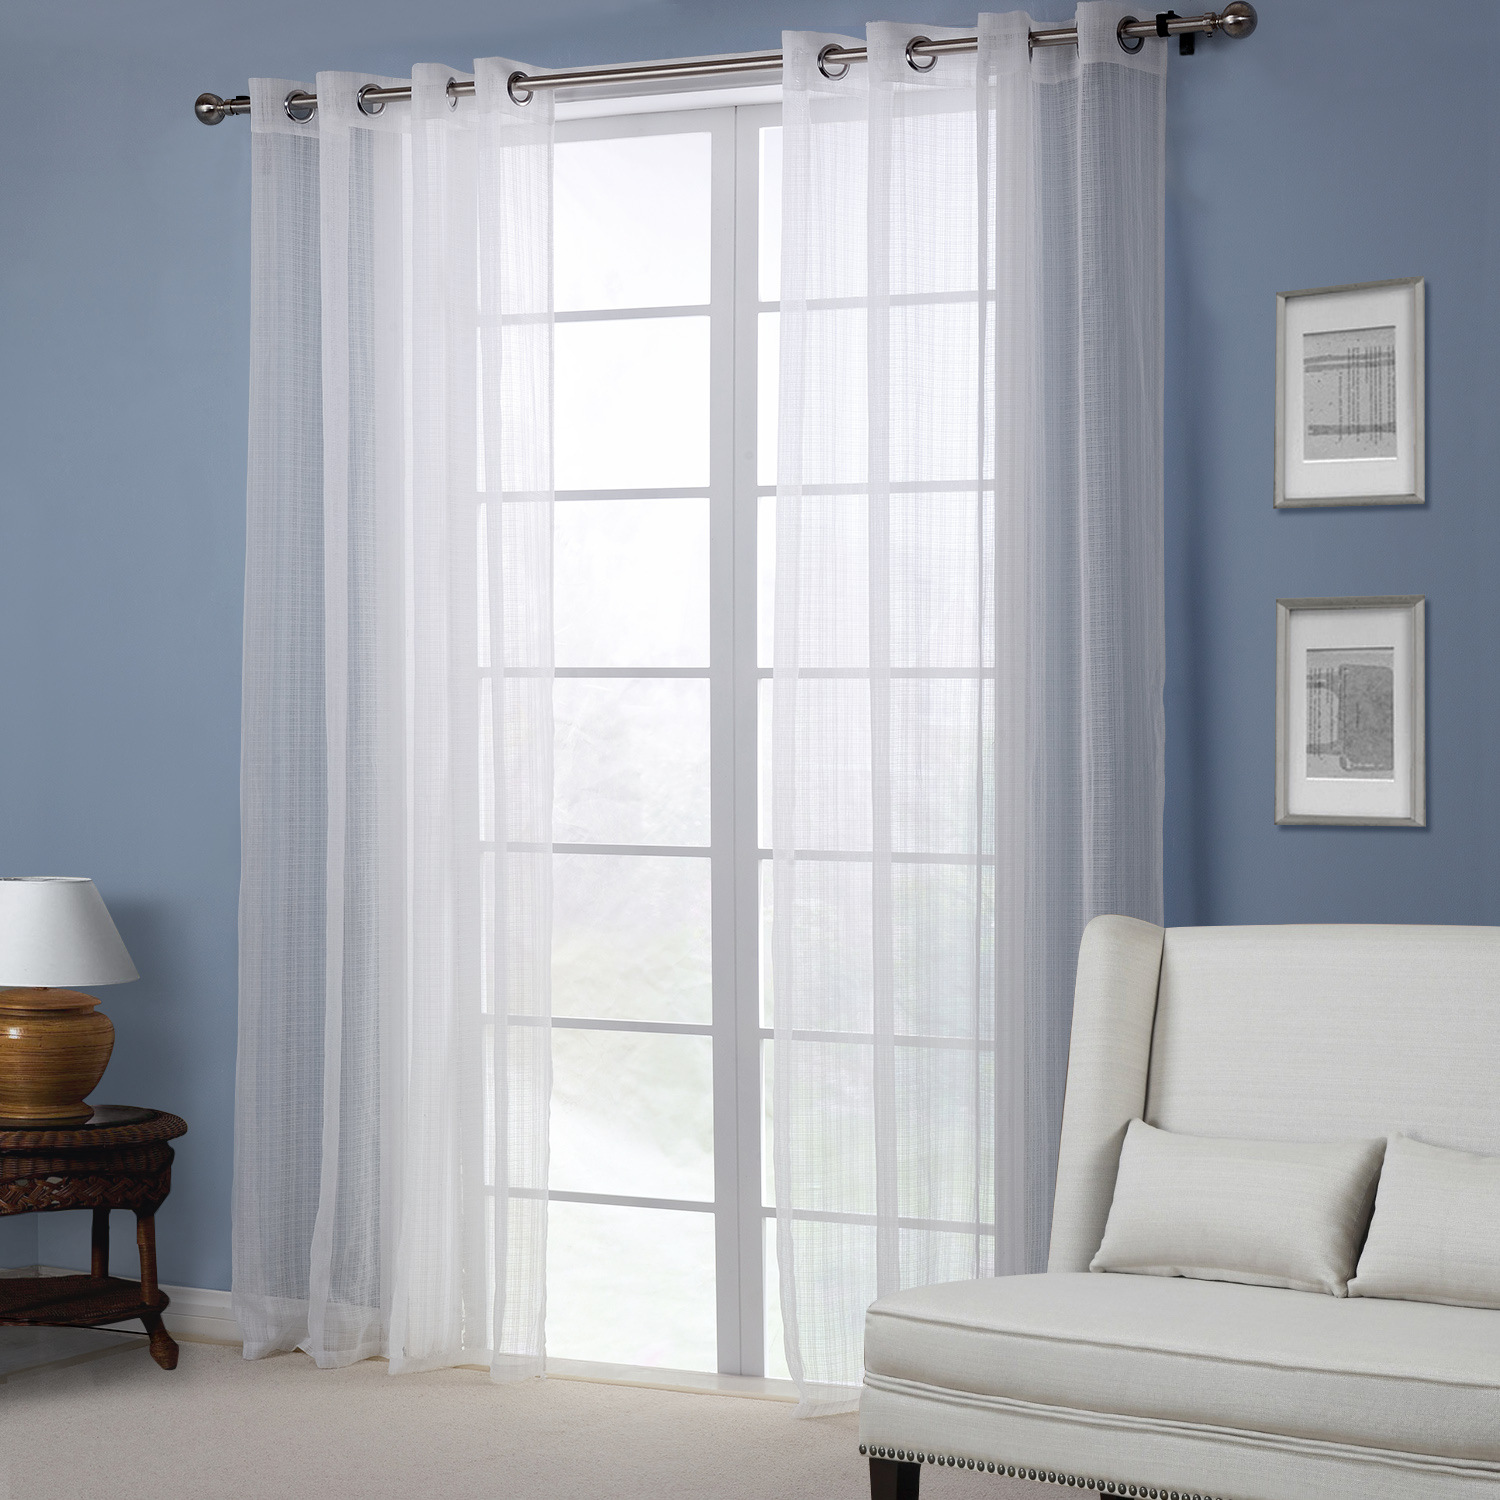 Sheer white bedroom curtains - The European And American Style Solid White Color Voile Curtain Finished Sheer Curtains For Bedroom And